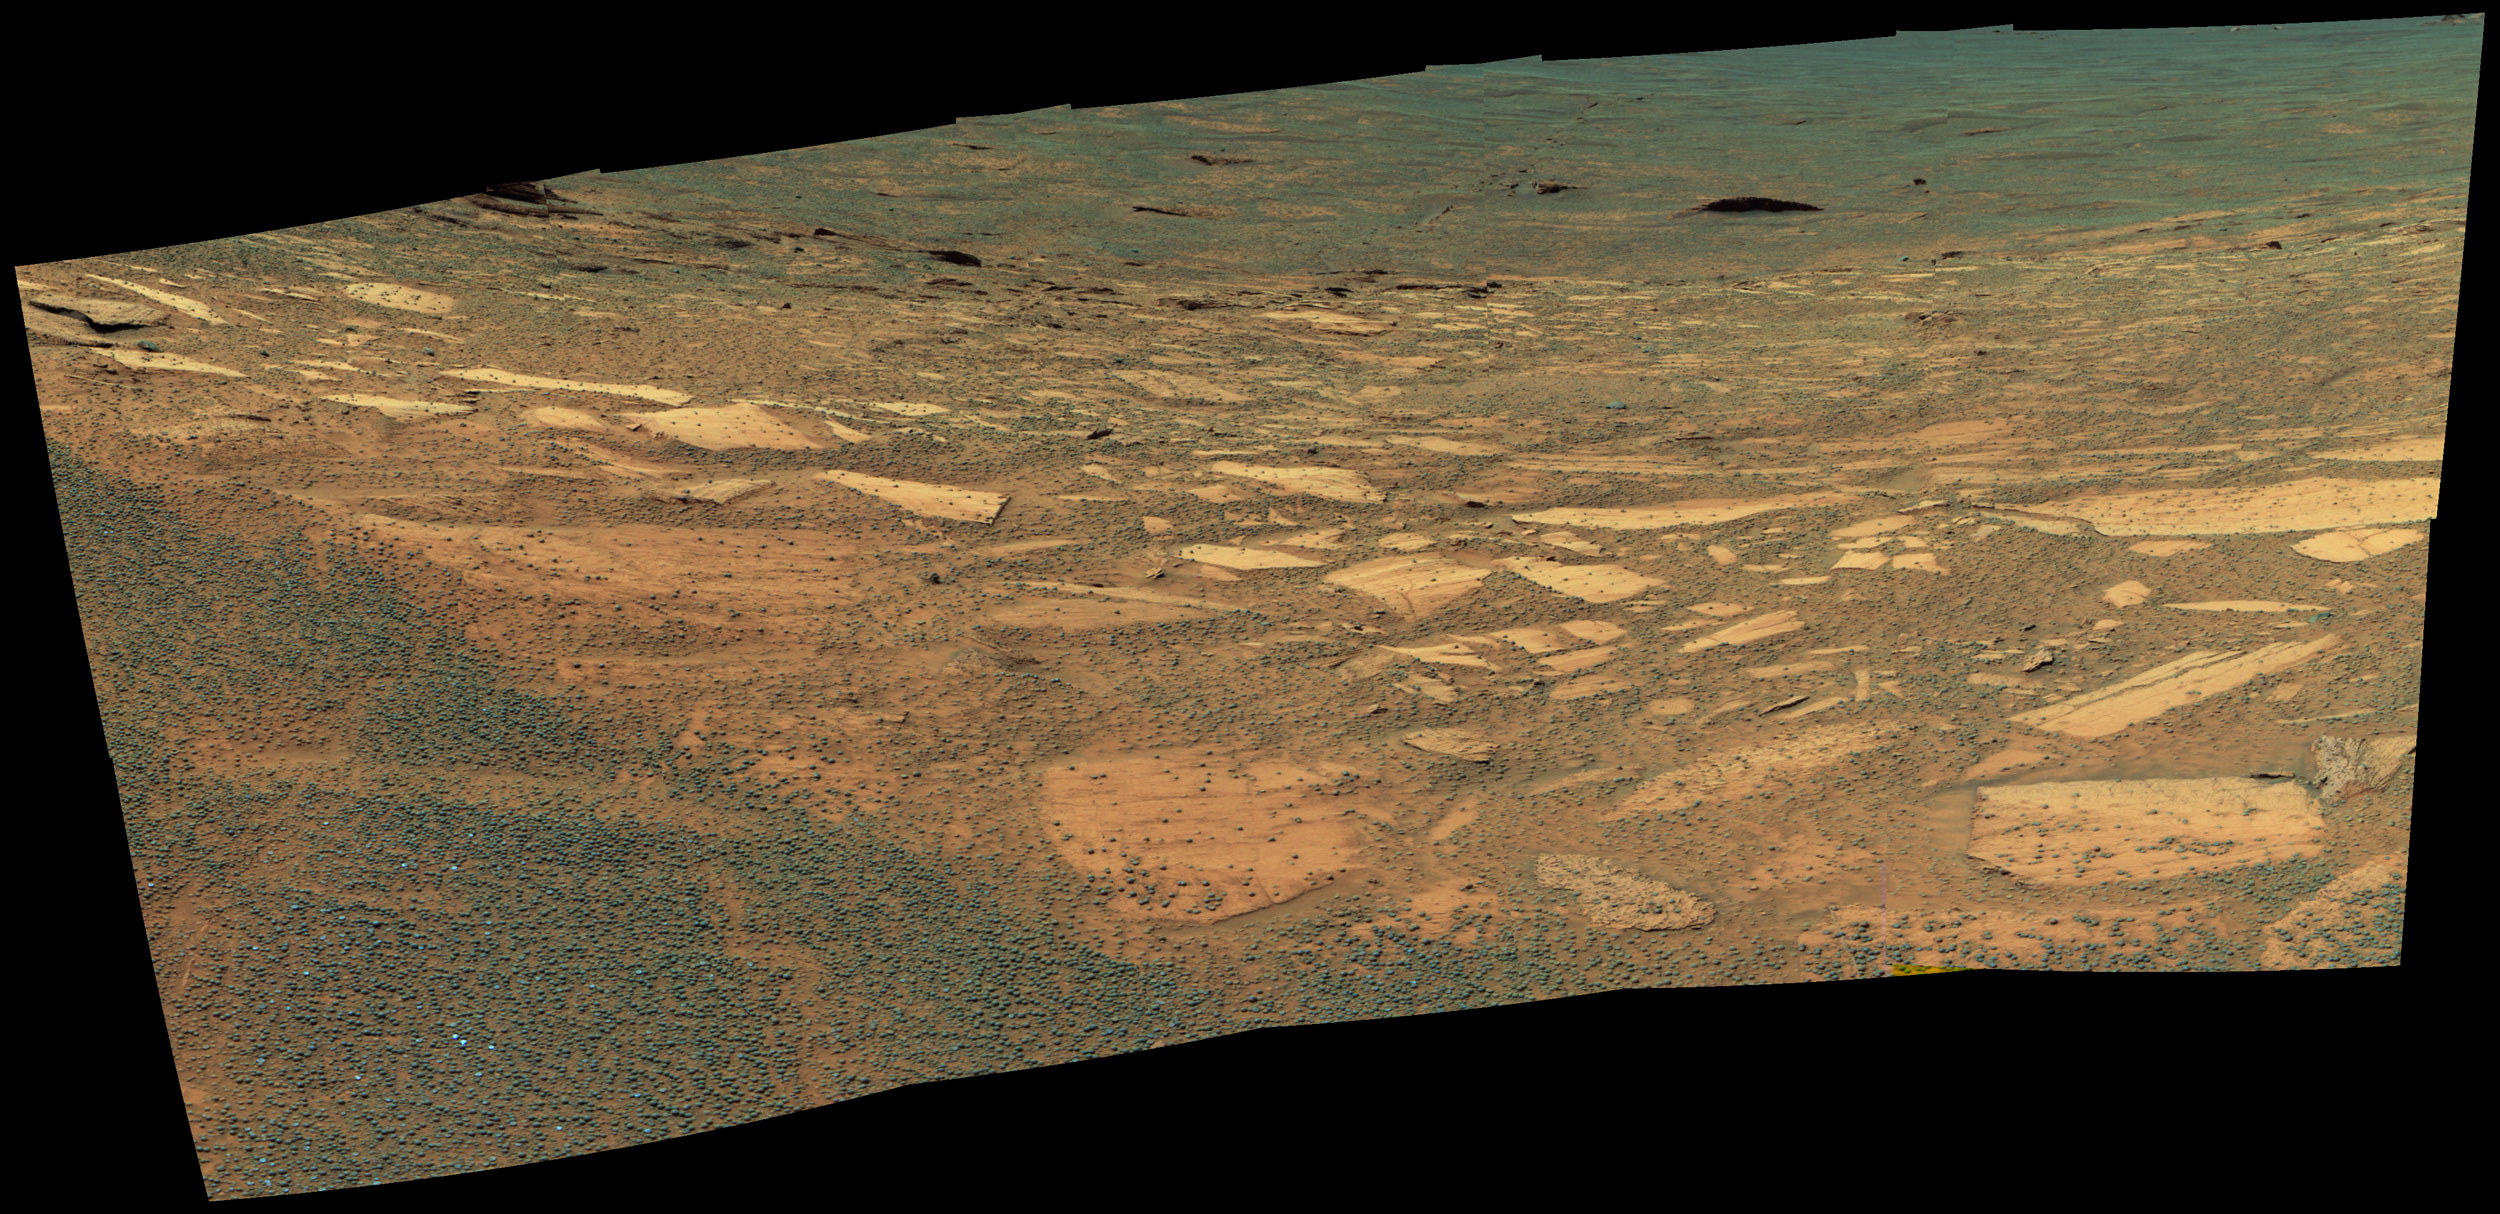 """Mars Rover """"Opportunity"""""""